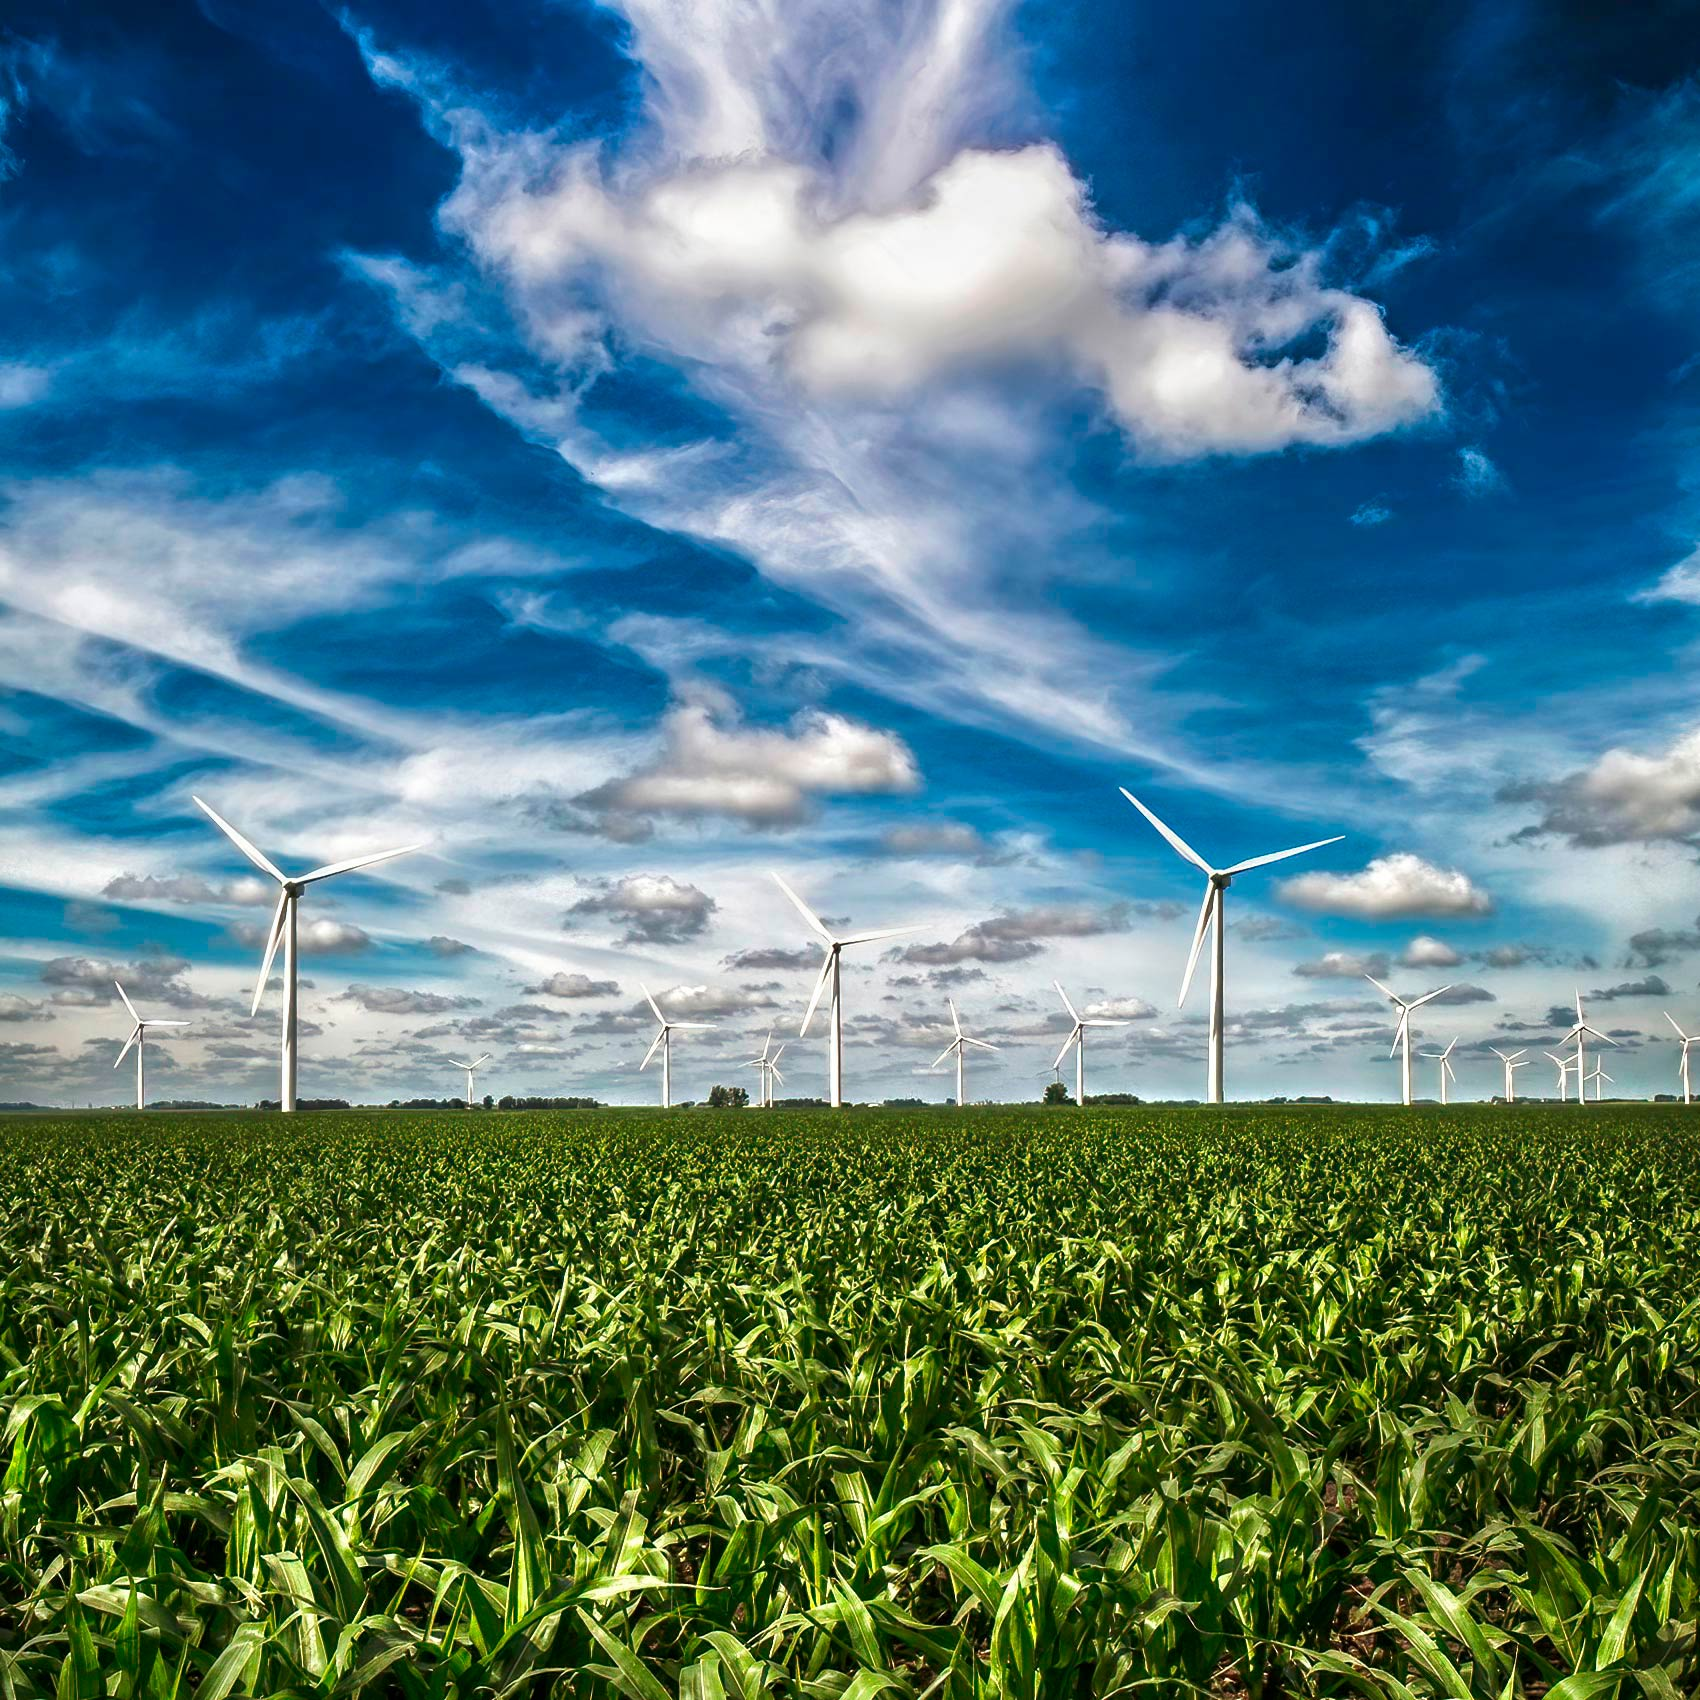 amazing-photo-of-a-group-of-wind-turbines-in-a-field-in-south-dakota